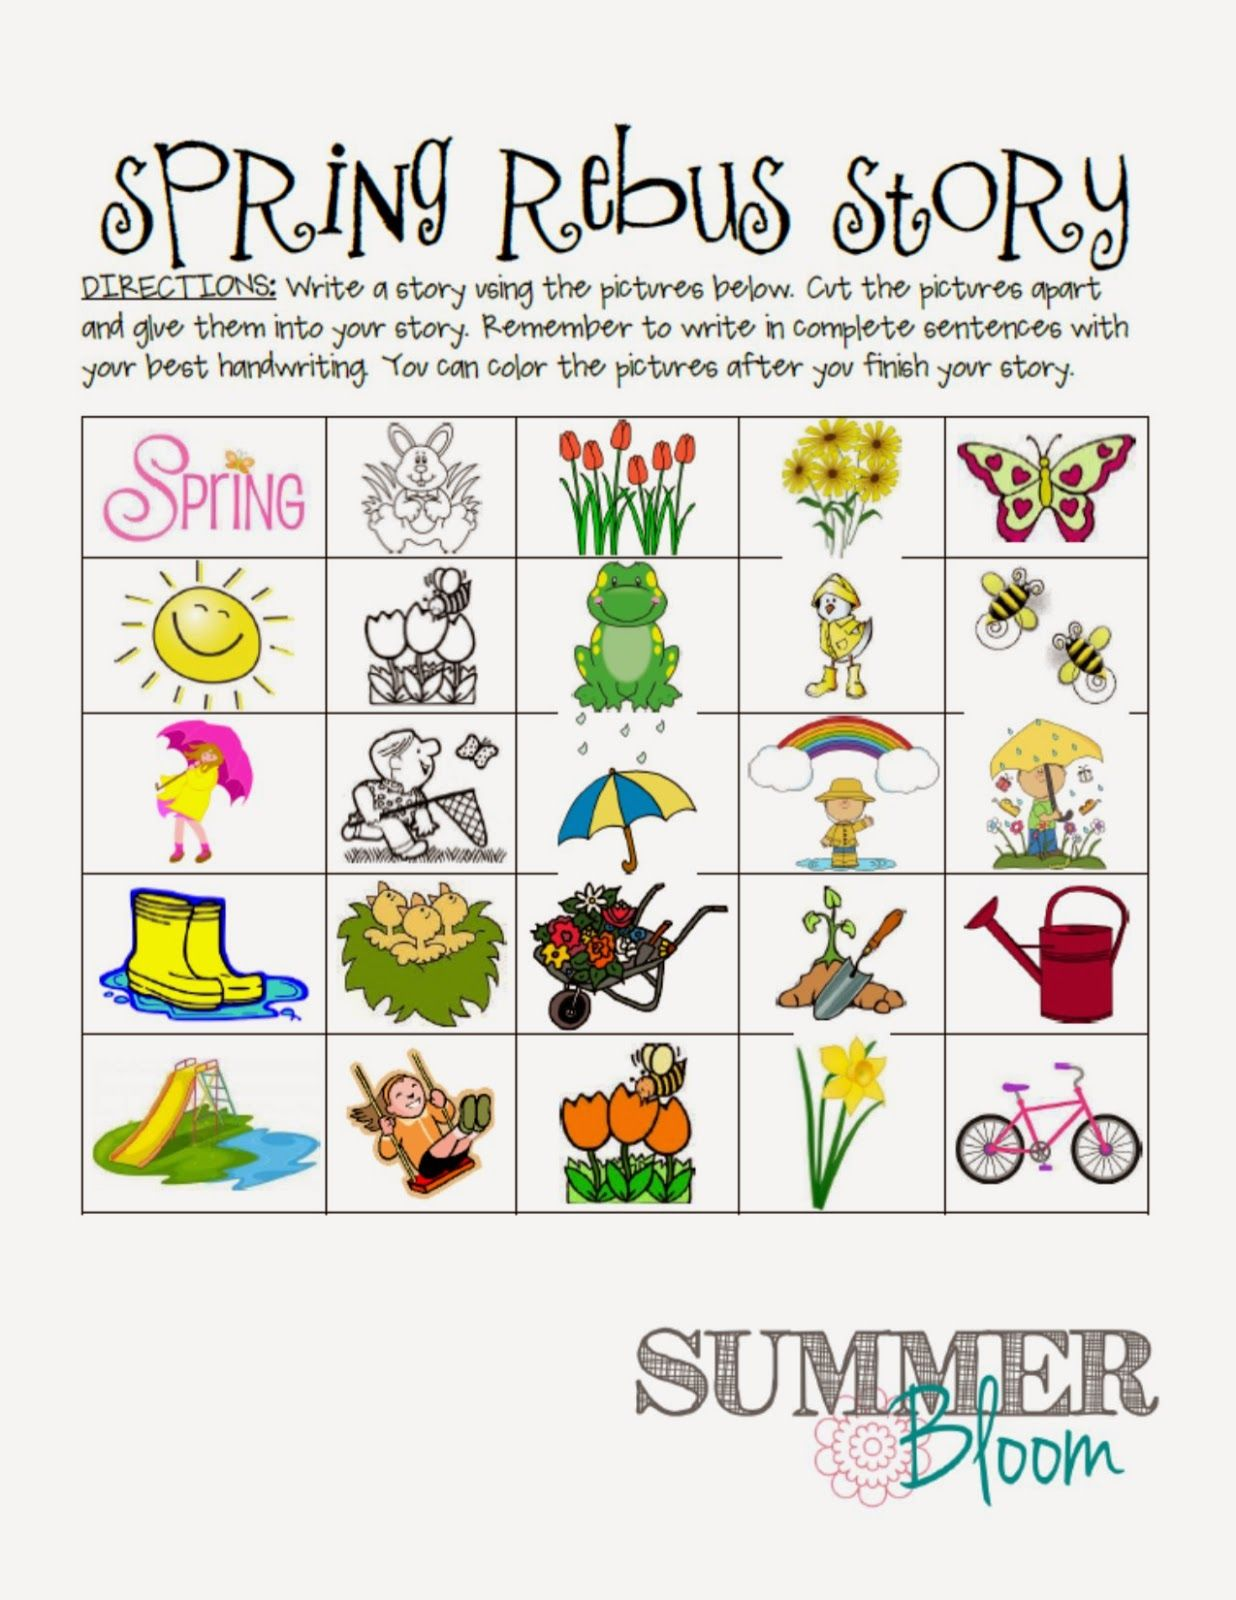 Spring Rebus Story FREEBIE perfect for spring in a work